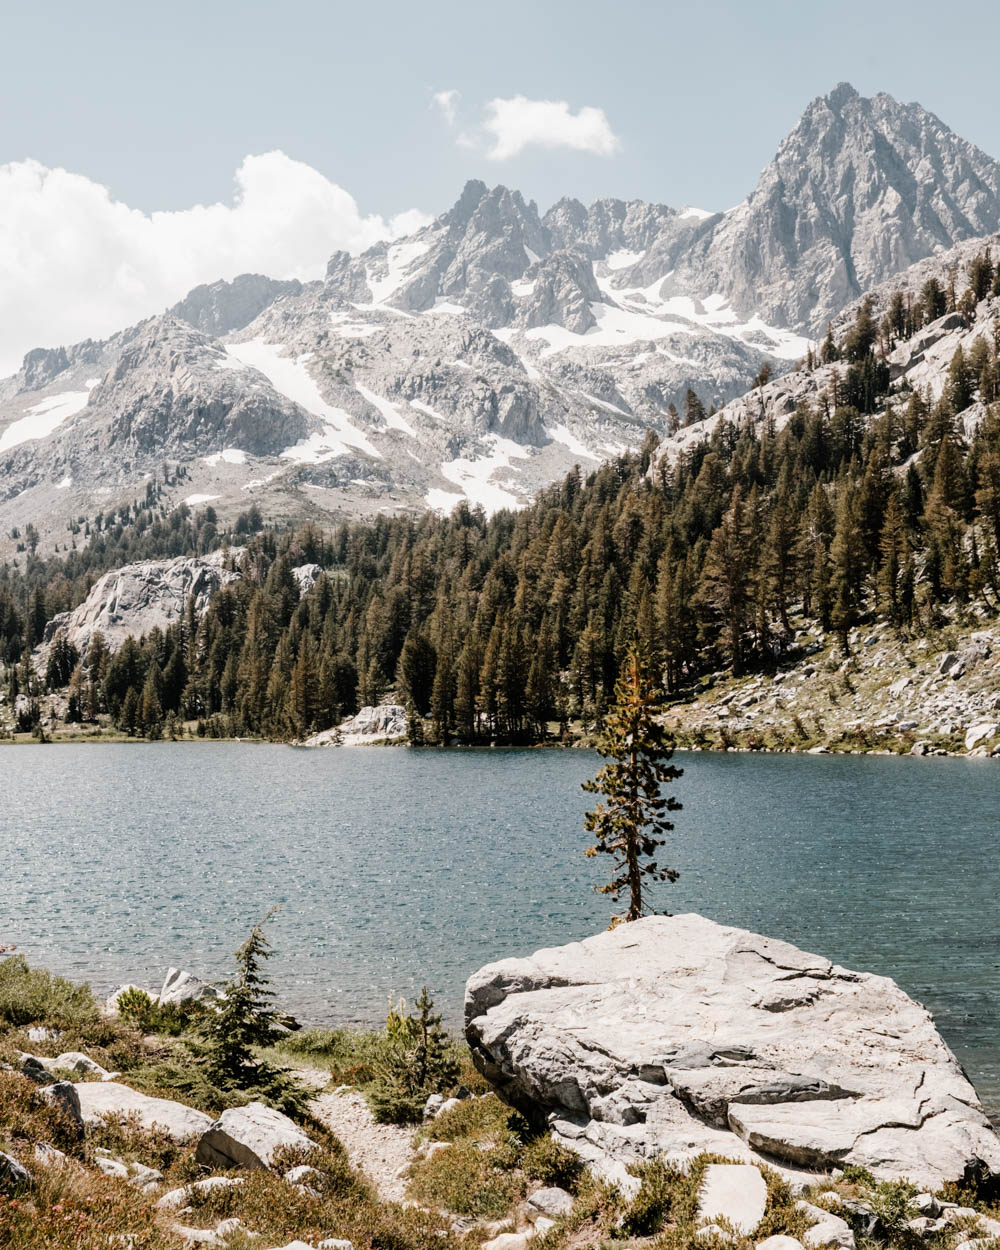 California top 33 epic engagement photography locations Ansel Adams wilderness lake